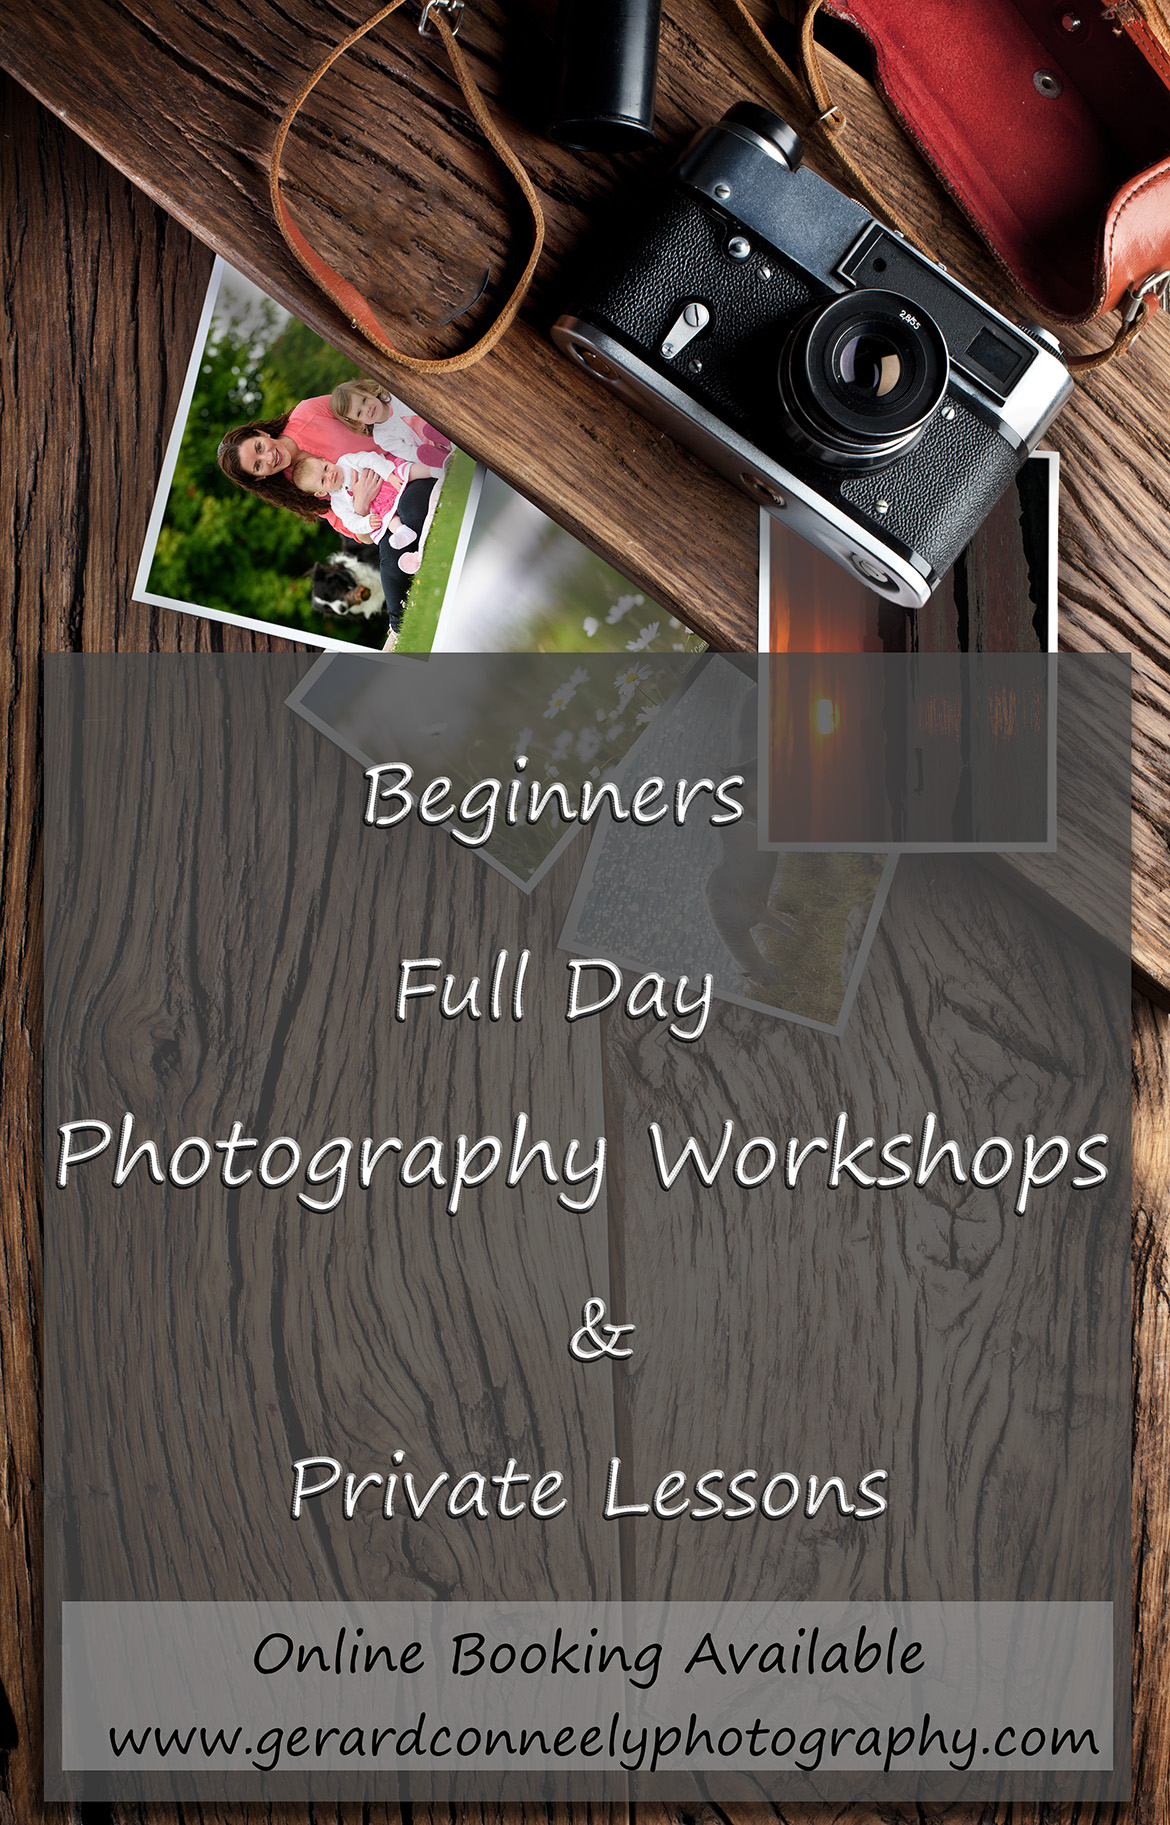 Recommended classes for learning photography in Ireland